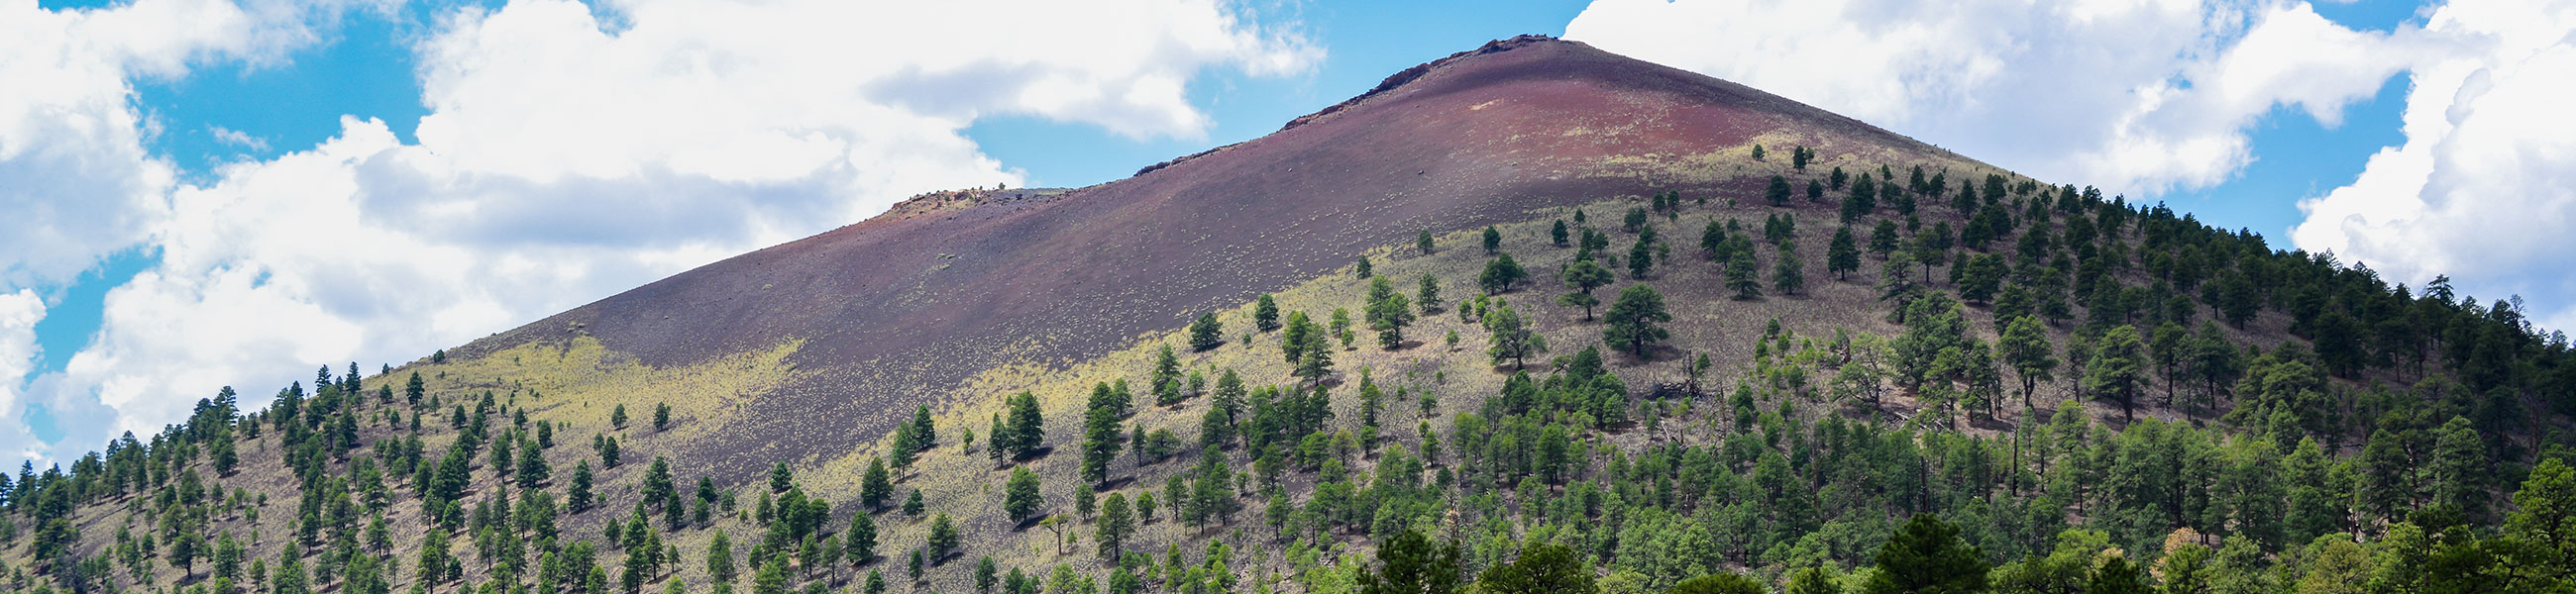 Paysage de Sunset Crater Volcano National Monument